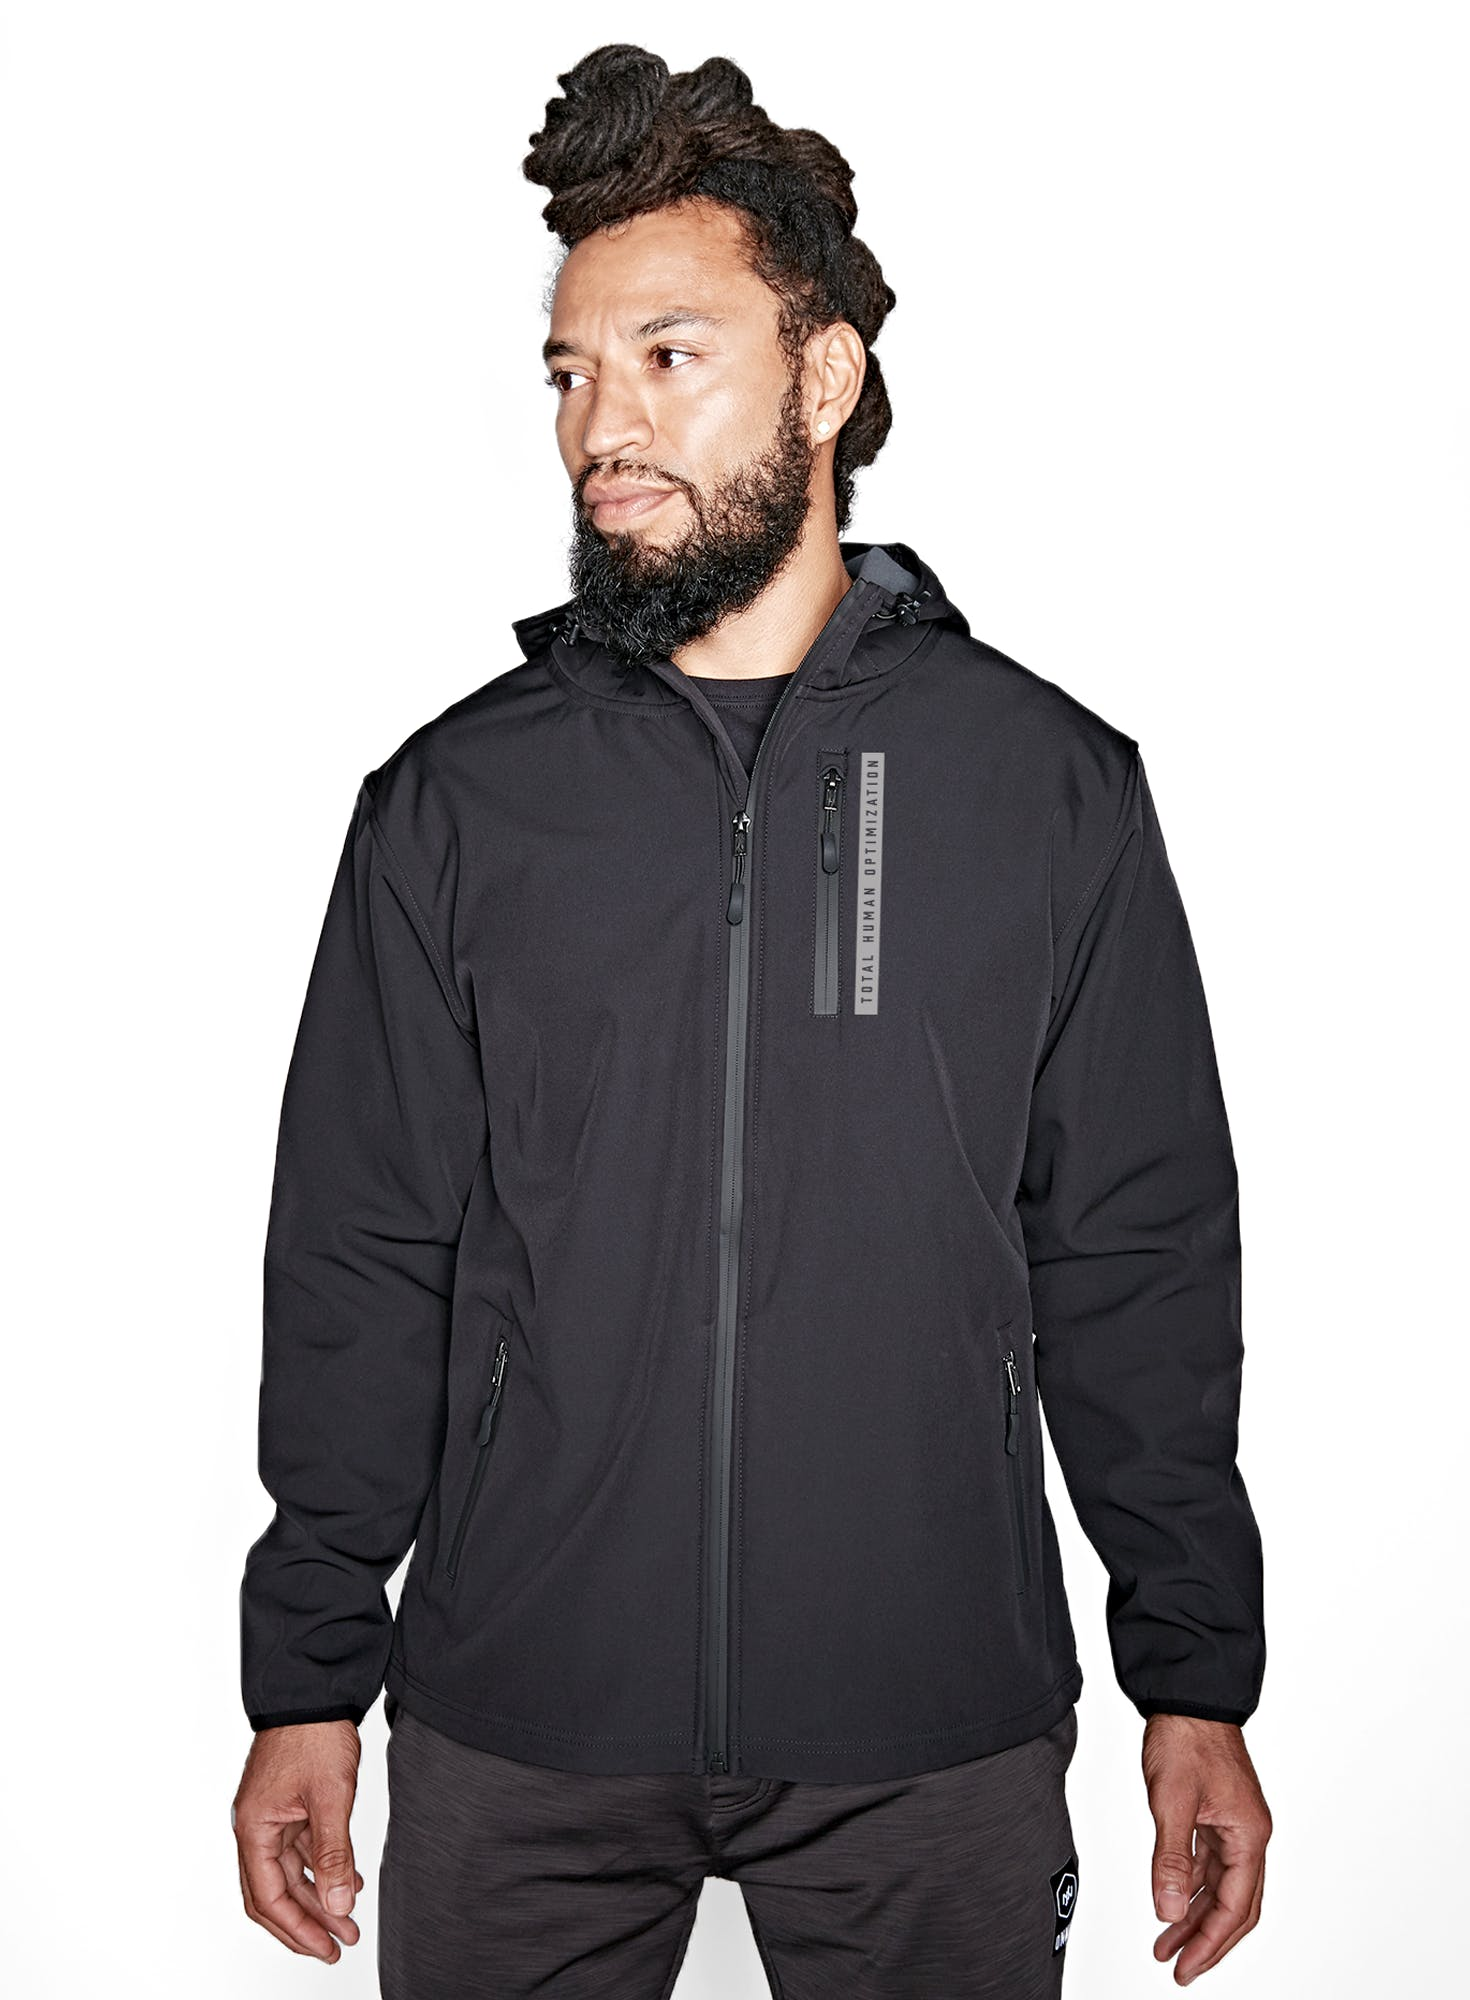 Straight Up Soft Shell Zip Jacket